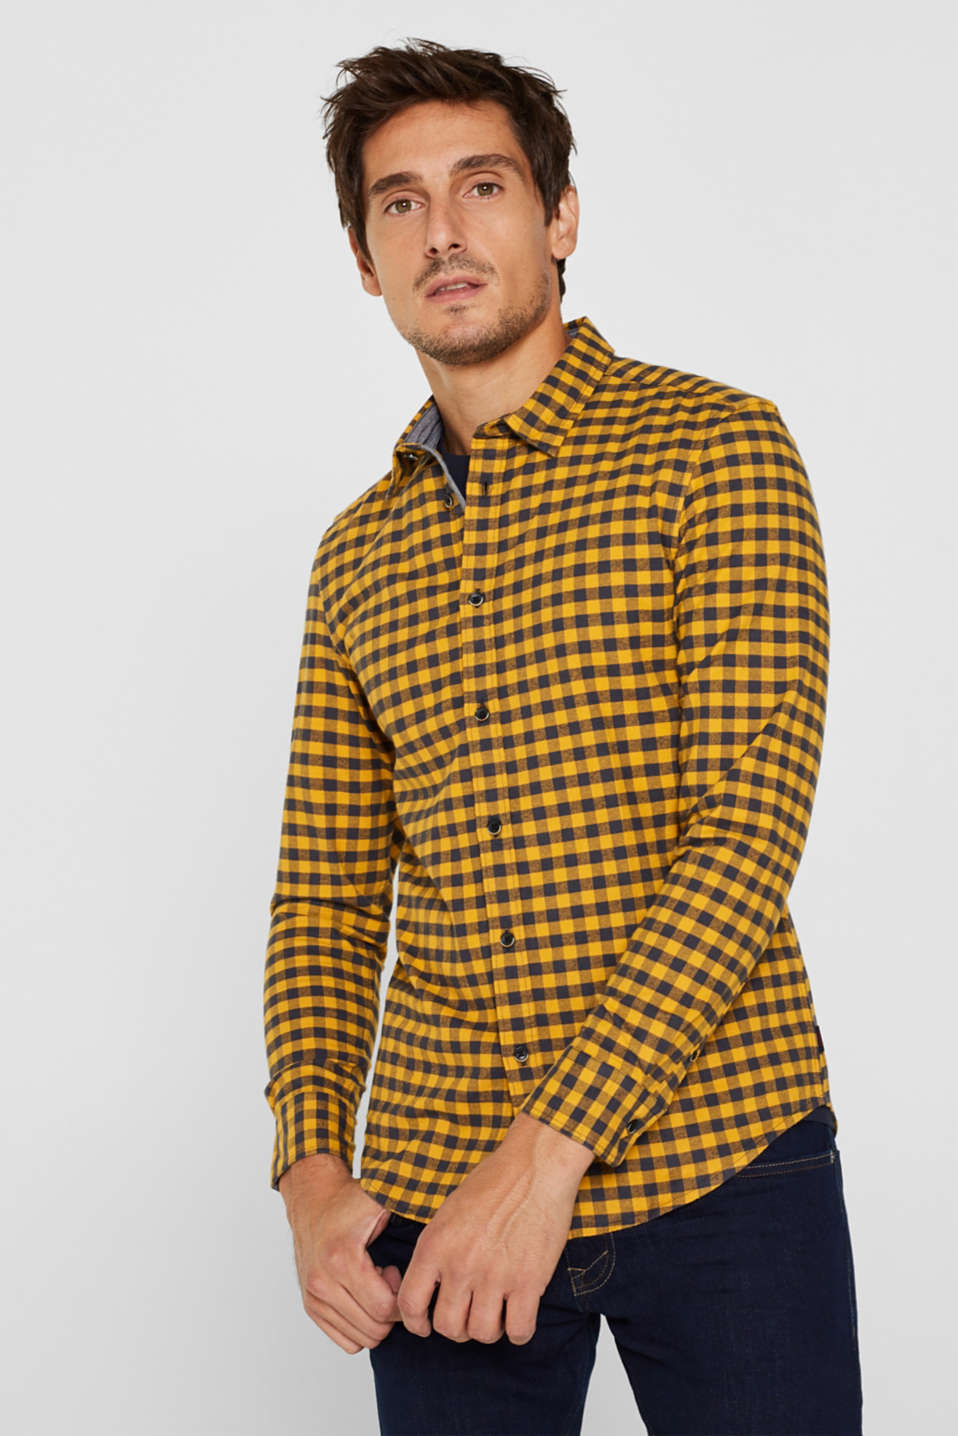 Esprit - Flannel shirt with checks, made of stretch cotton